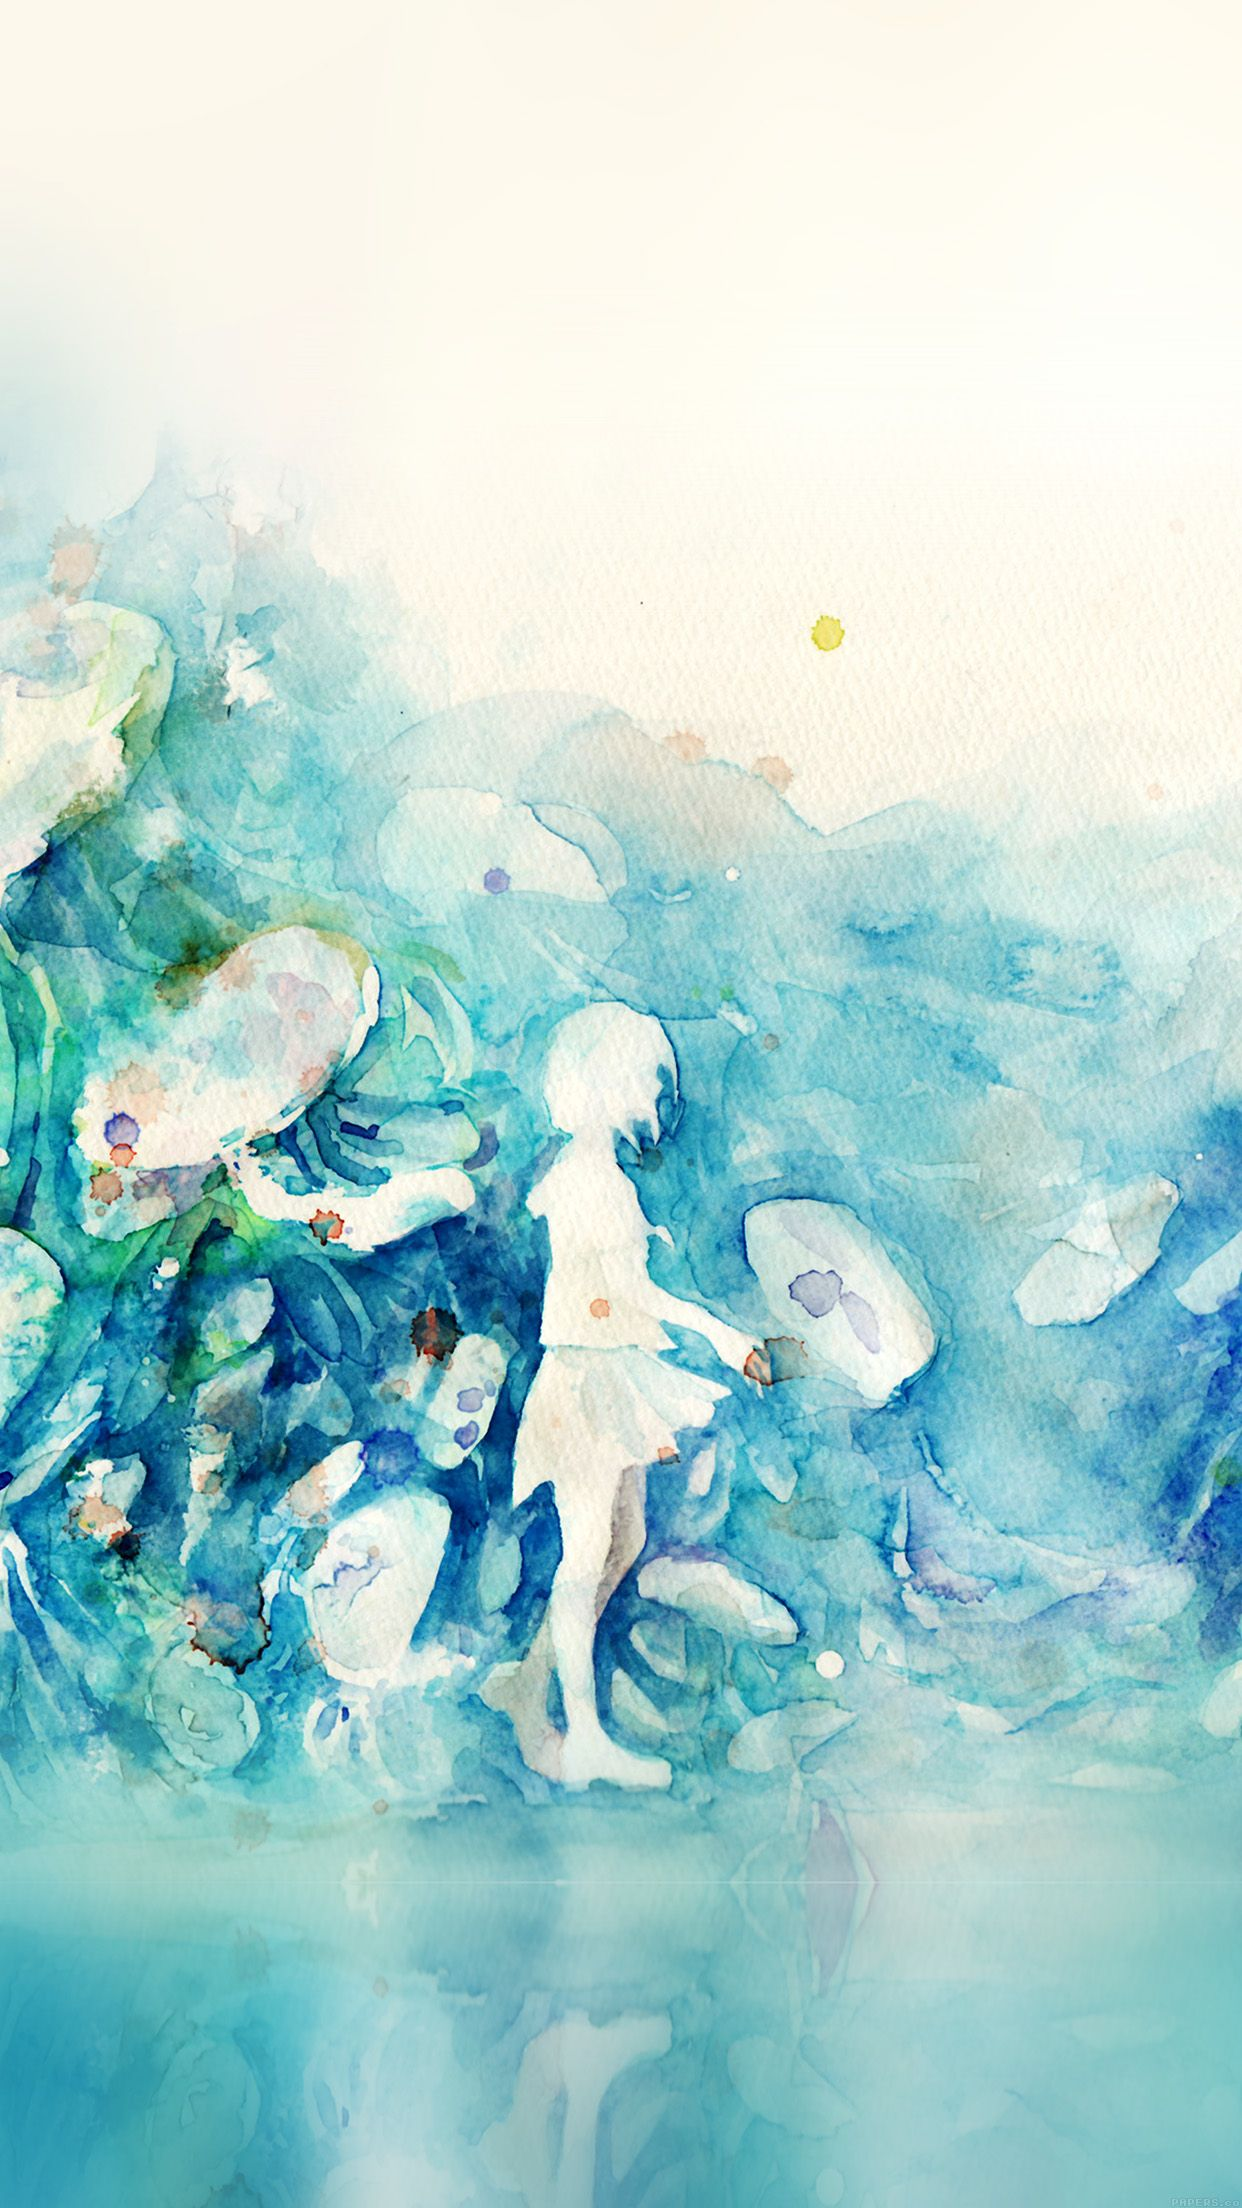 Cool Watercolor Blue Girl Nature Art Illust Iphone6 Plus Wallpaper